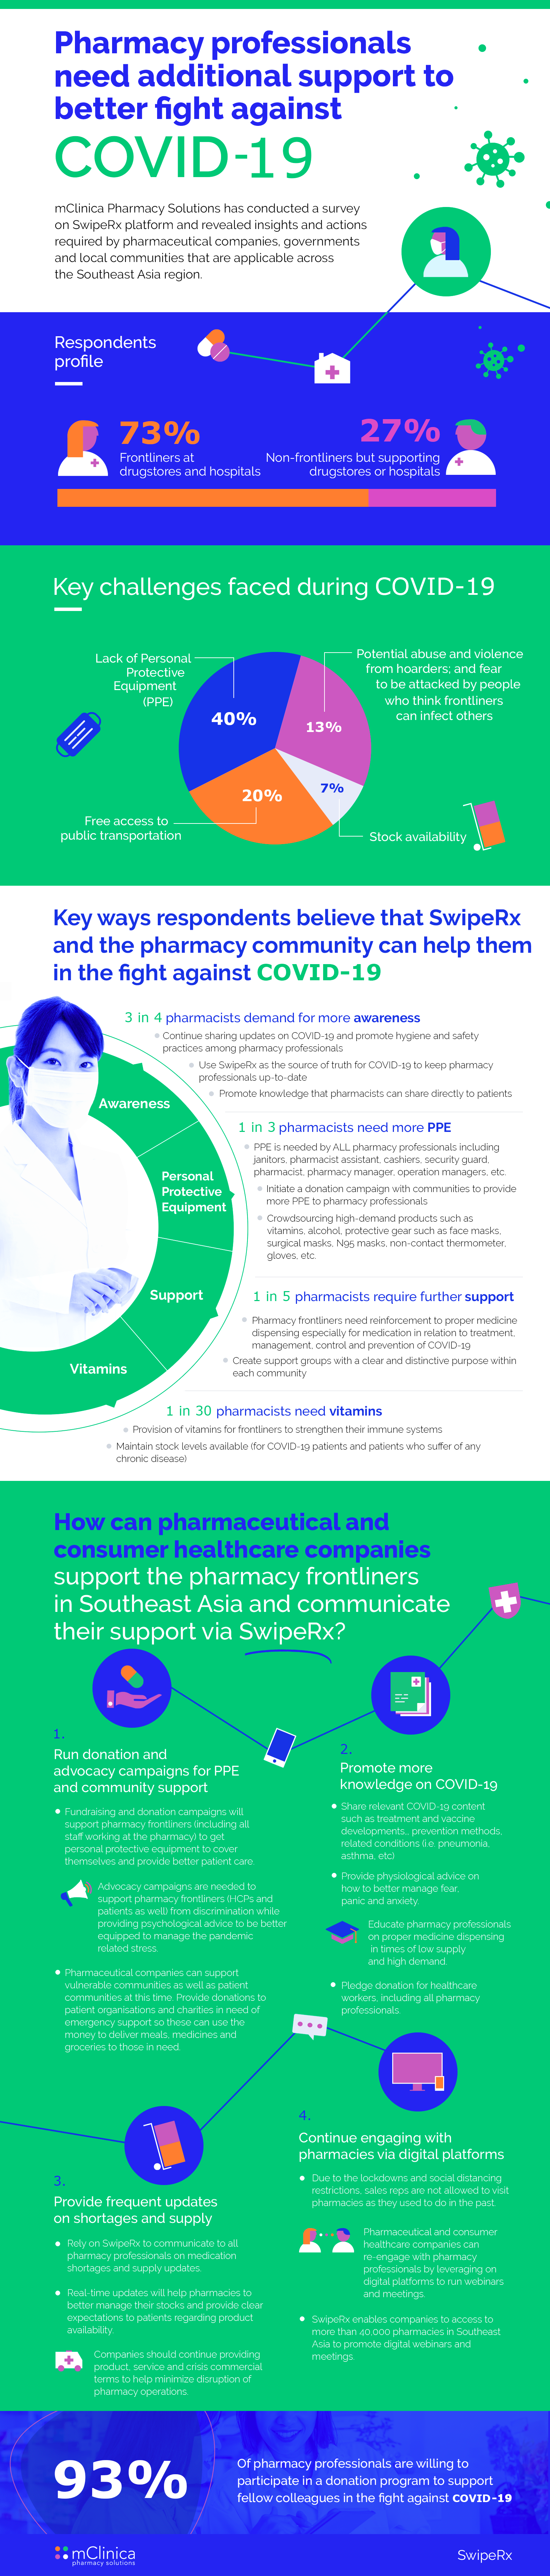 29042020-Pharmacy professionals need additional support to better fight against COVID-19